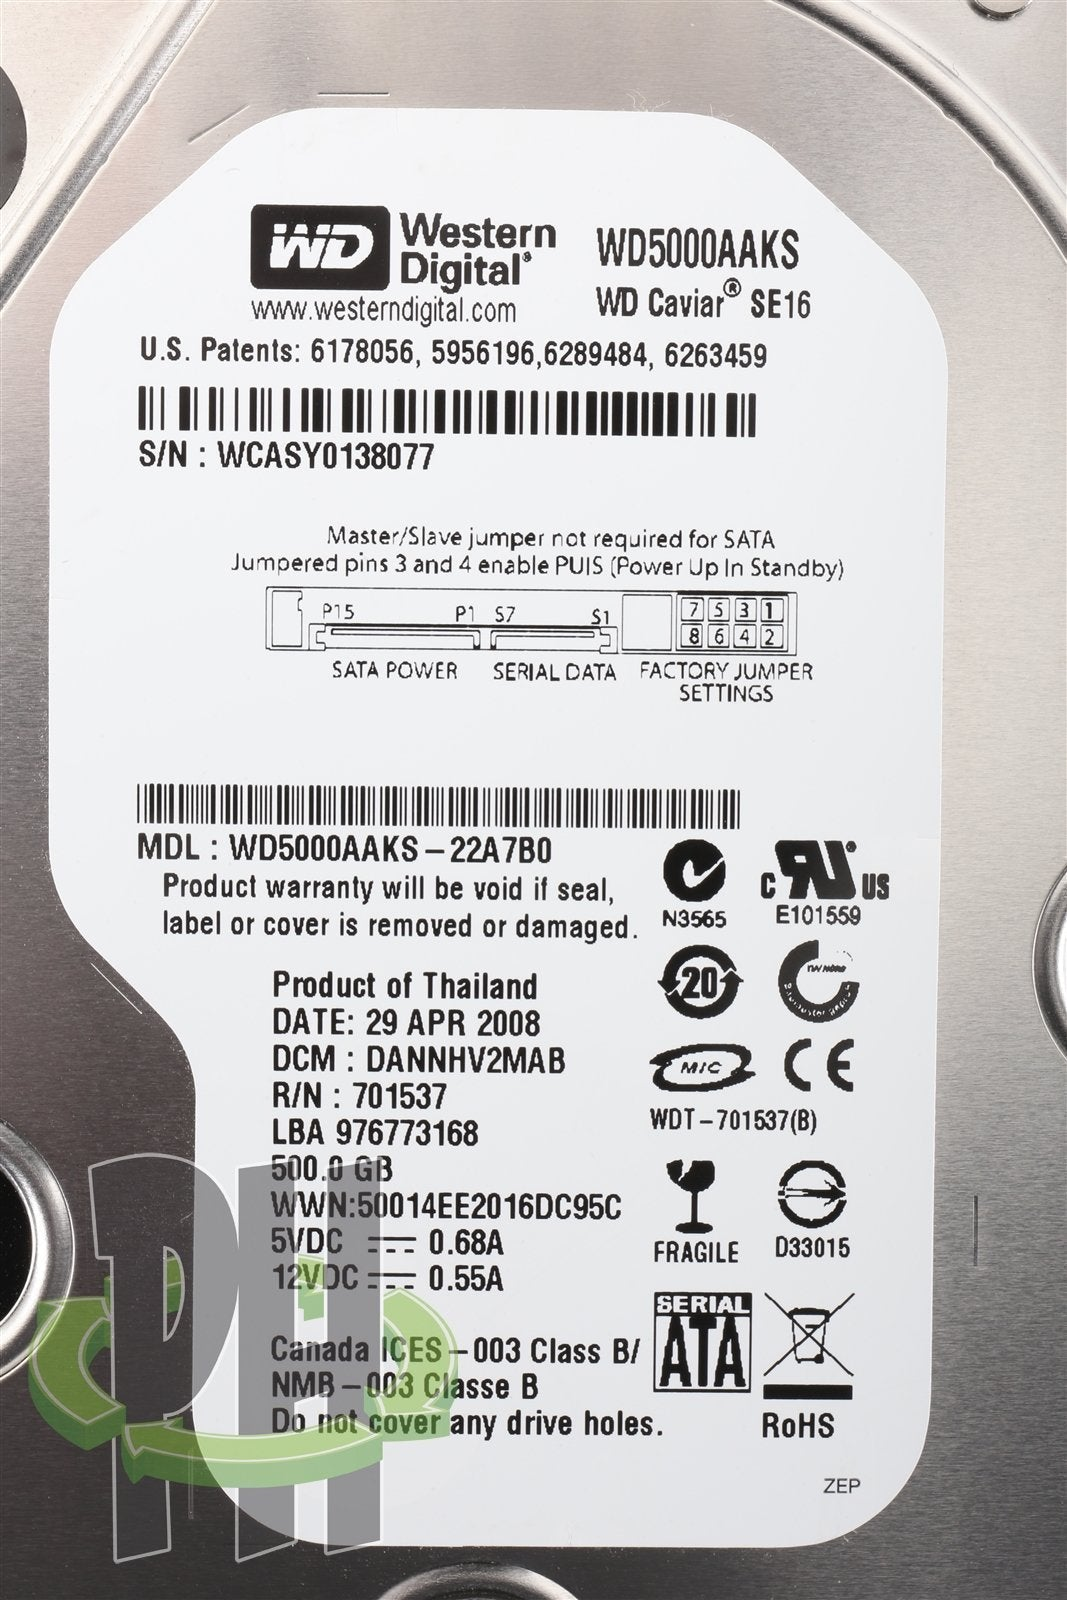 WD5000AAKS 500GB SATA 7200RPM WD Caviar SE16 Formatted for Apple